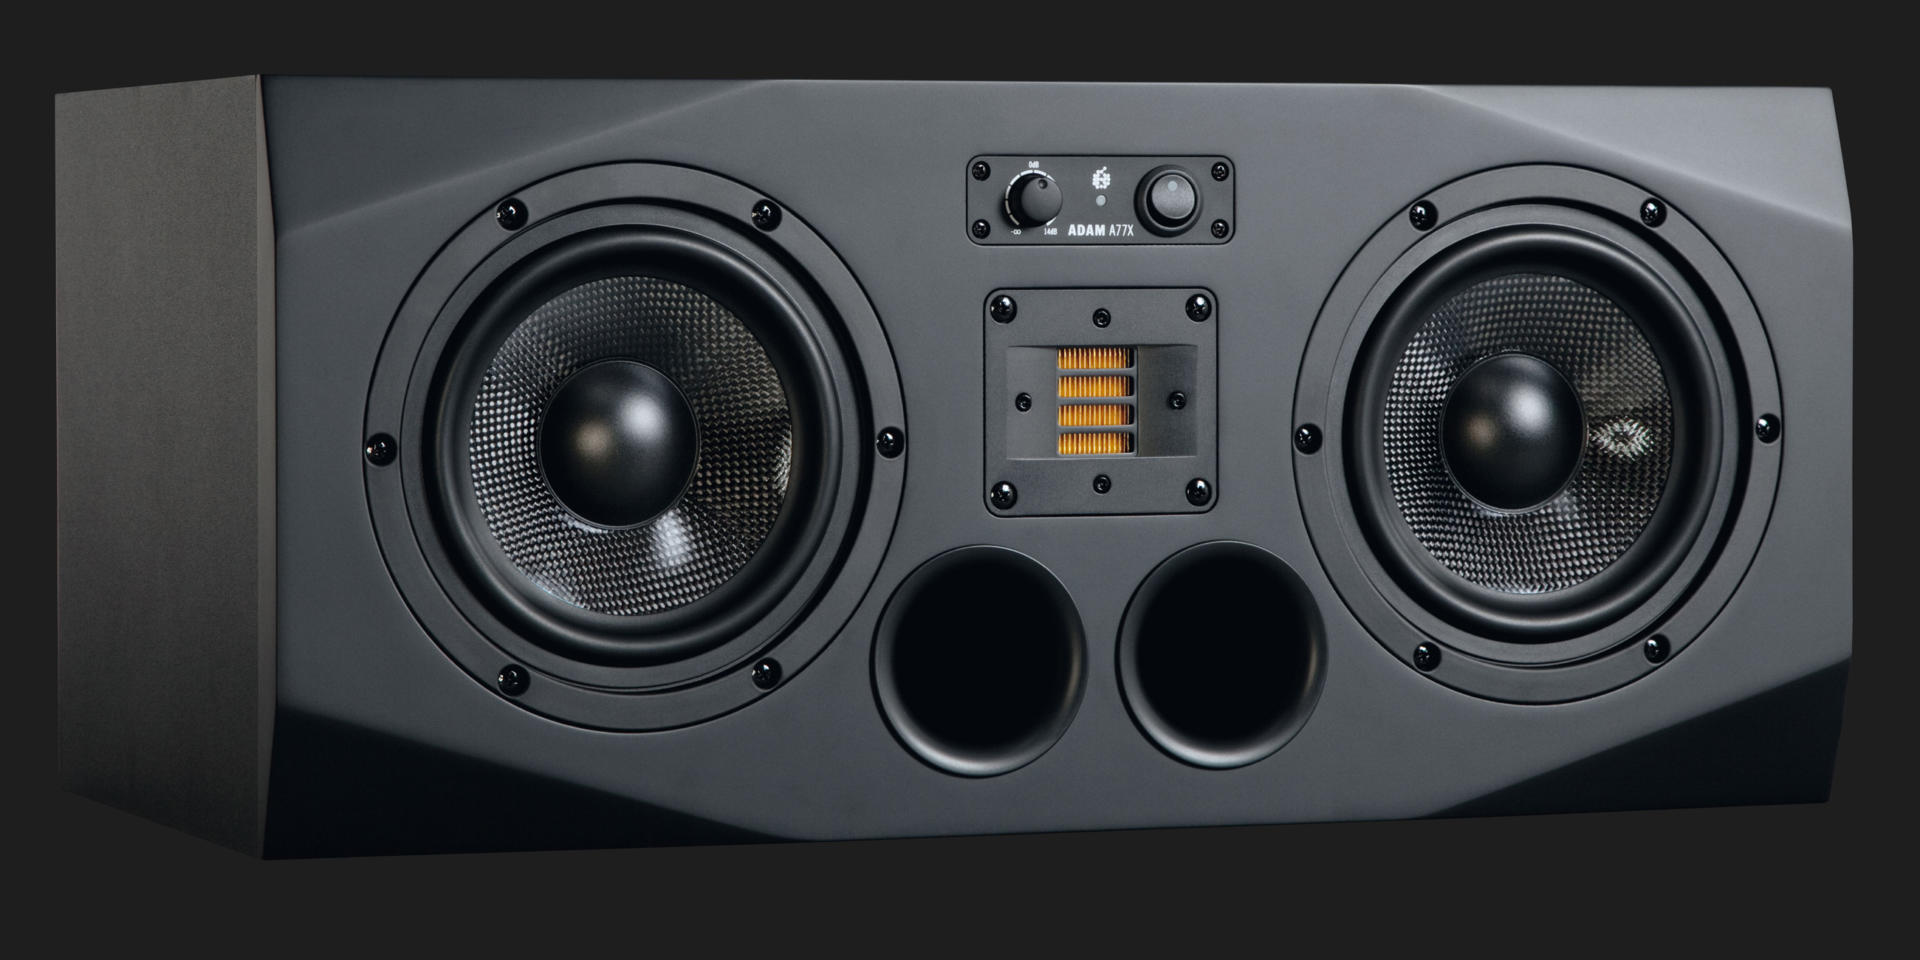 adam-audio-a77x-active-monitor-front-1920x960.jpg